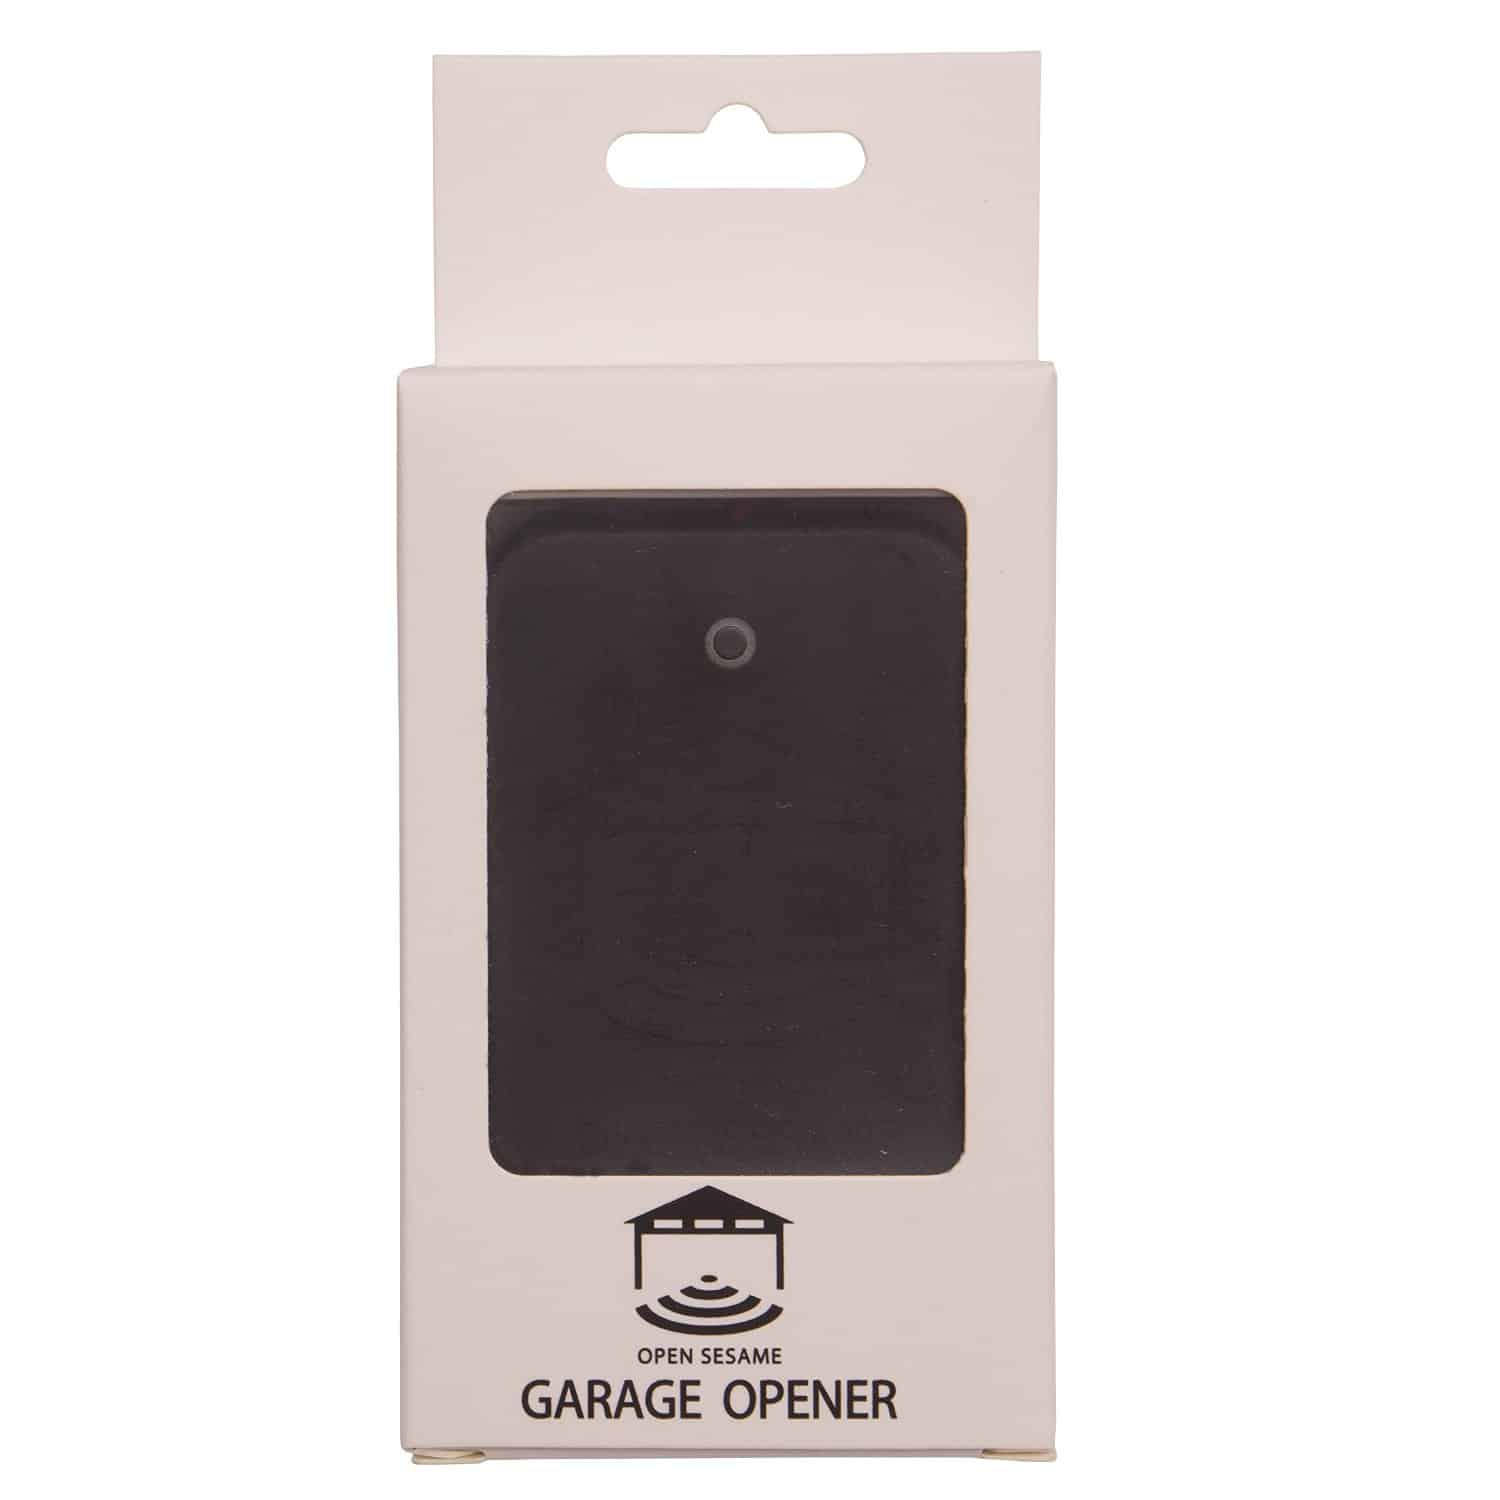 garage door opener remoteOpen Sesame HNAOS01 Garage Door Opener Remote Control Reviews